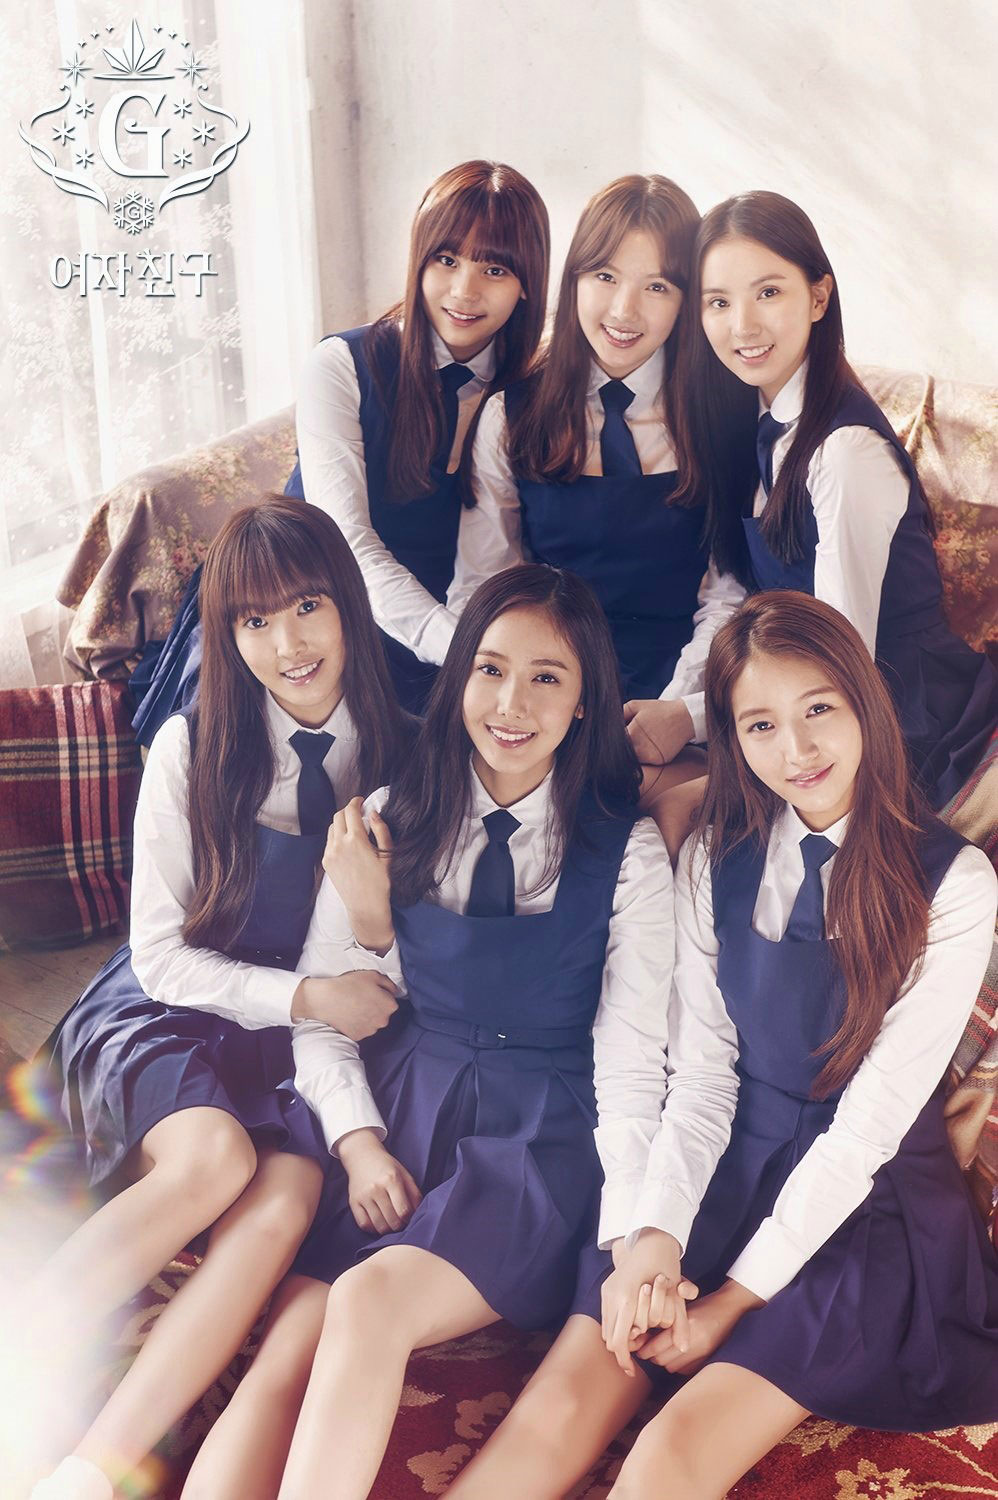 GFriend Snowflake Korean mini album